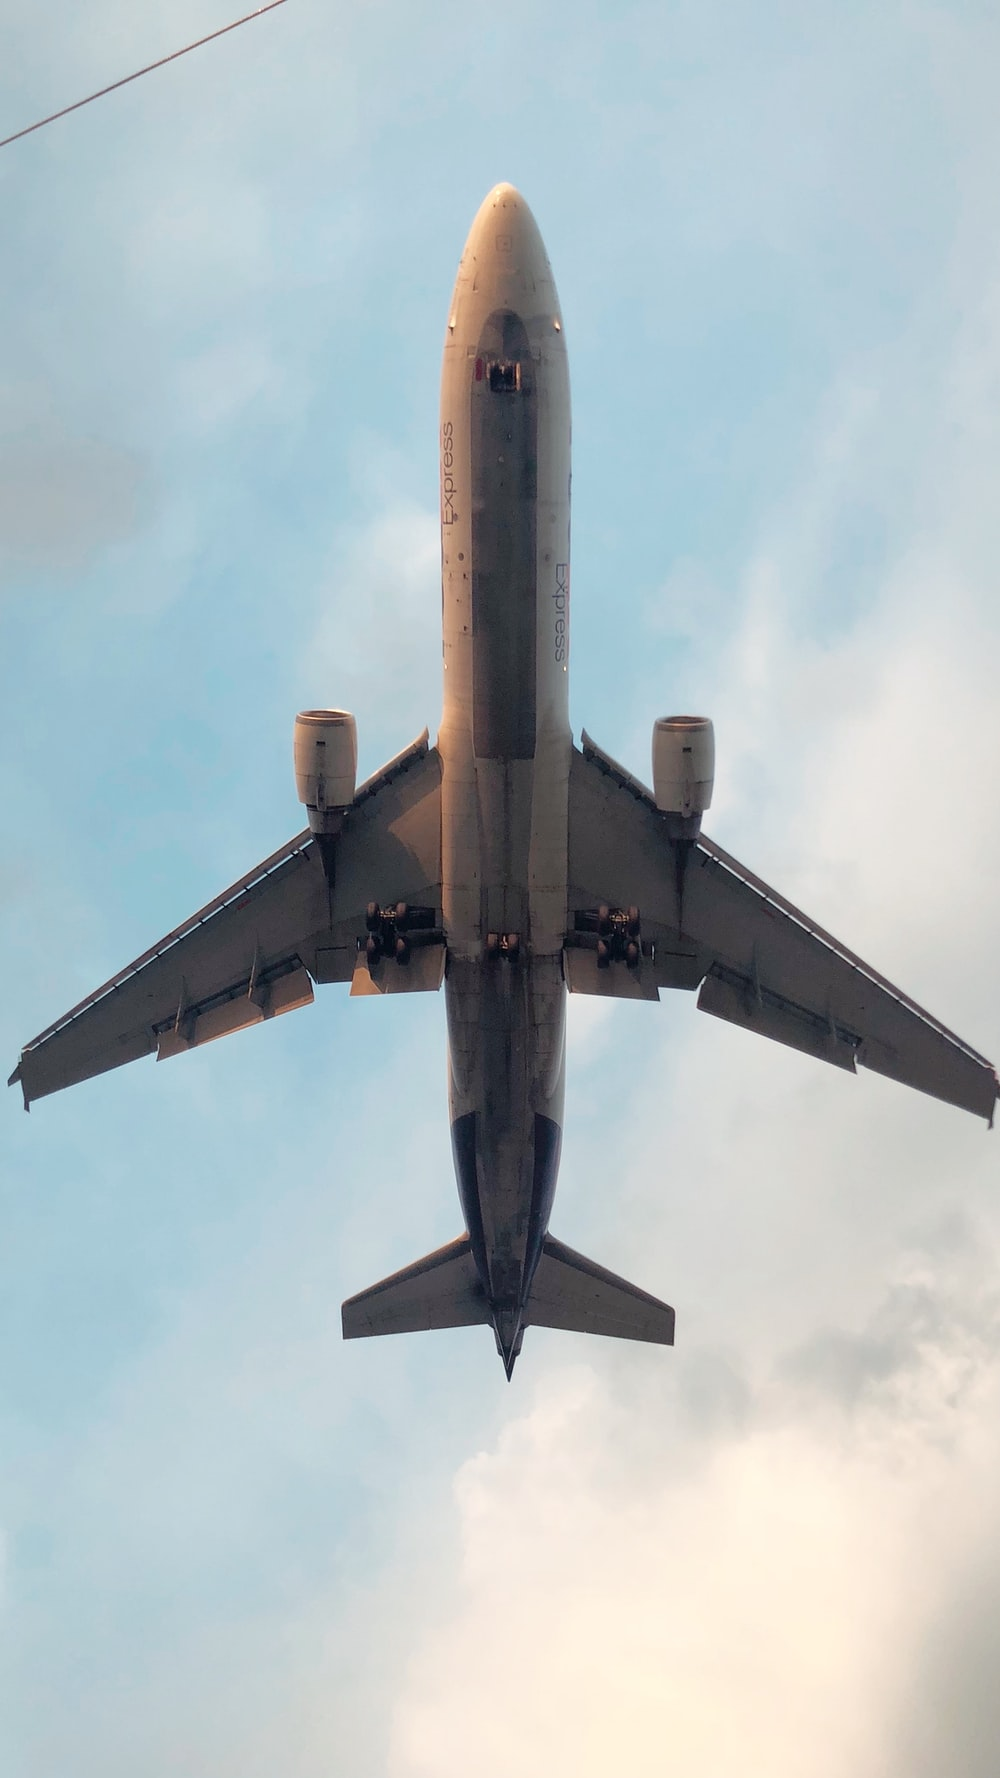 gray and yellow airplane under white clouds during daytime